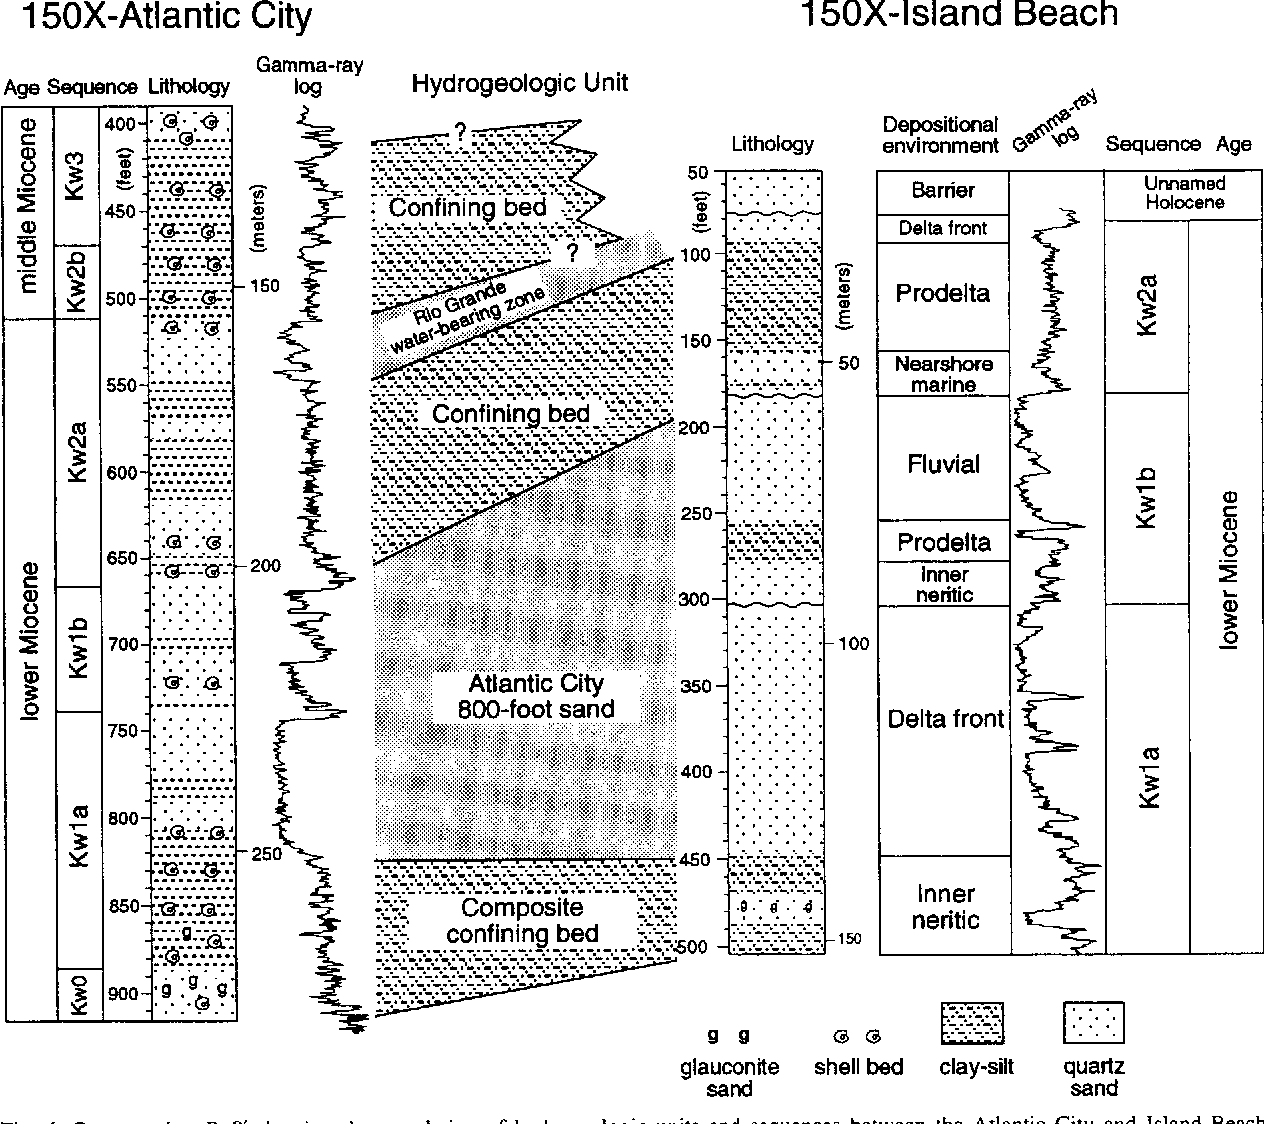 Fig. 6. Cross-section B-B' showing the correlation of hydrogeologic units and sequences between the Atlantic City and Island Beach boreholes, and thickening of the Atlantic City 800-foot sand to the north towards Island Beach.